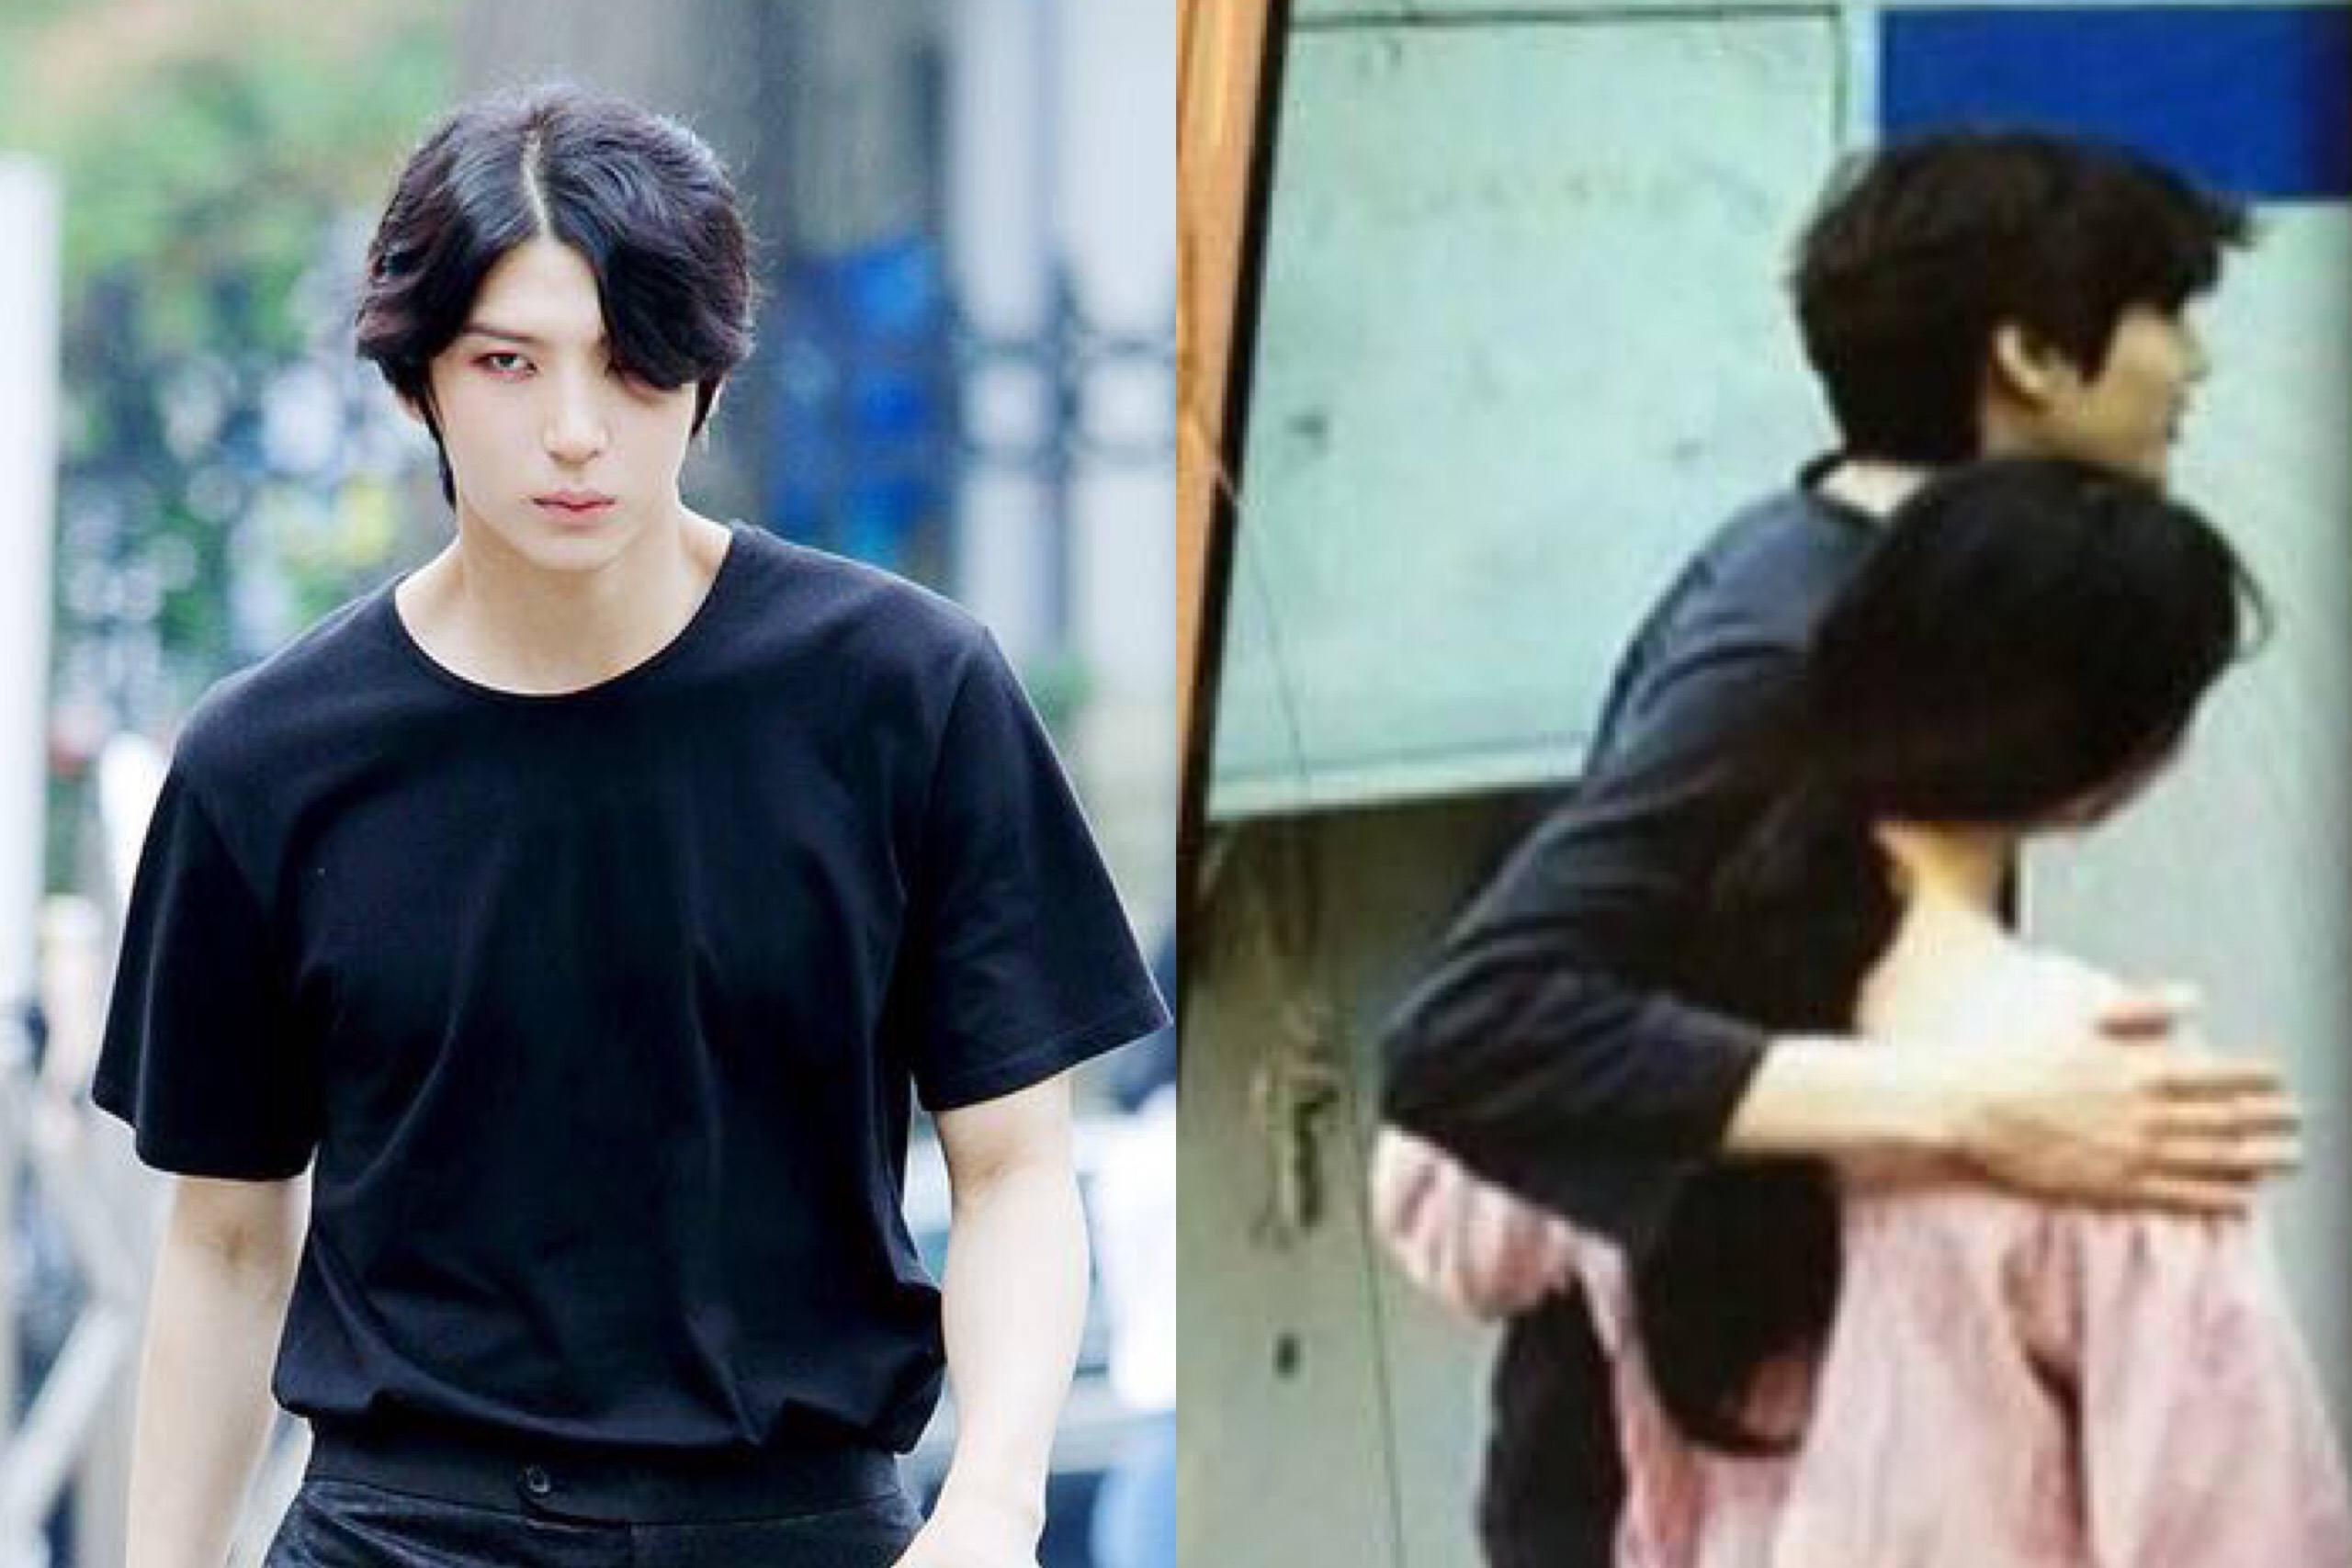 [★TRENDING] VIXX Leo Rumored To Be Dating A Fan